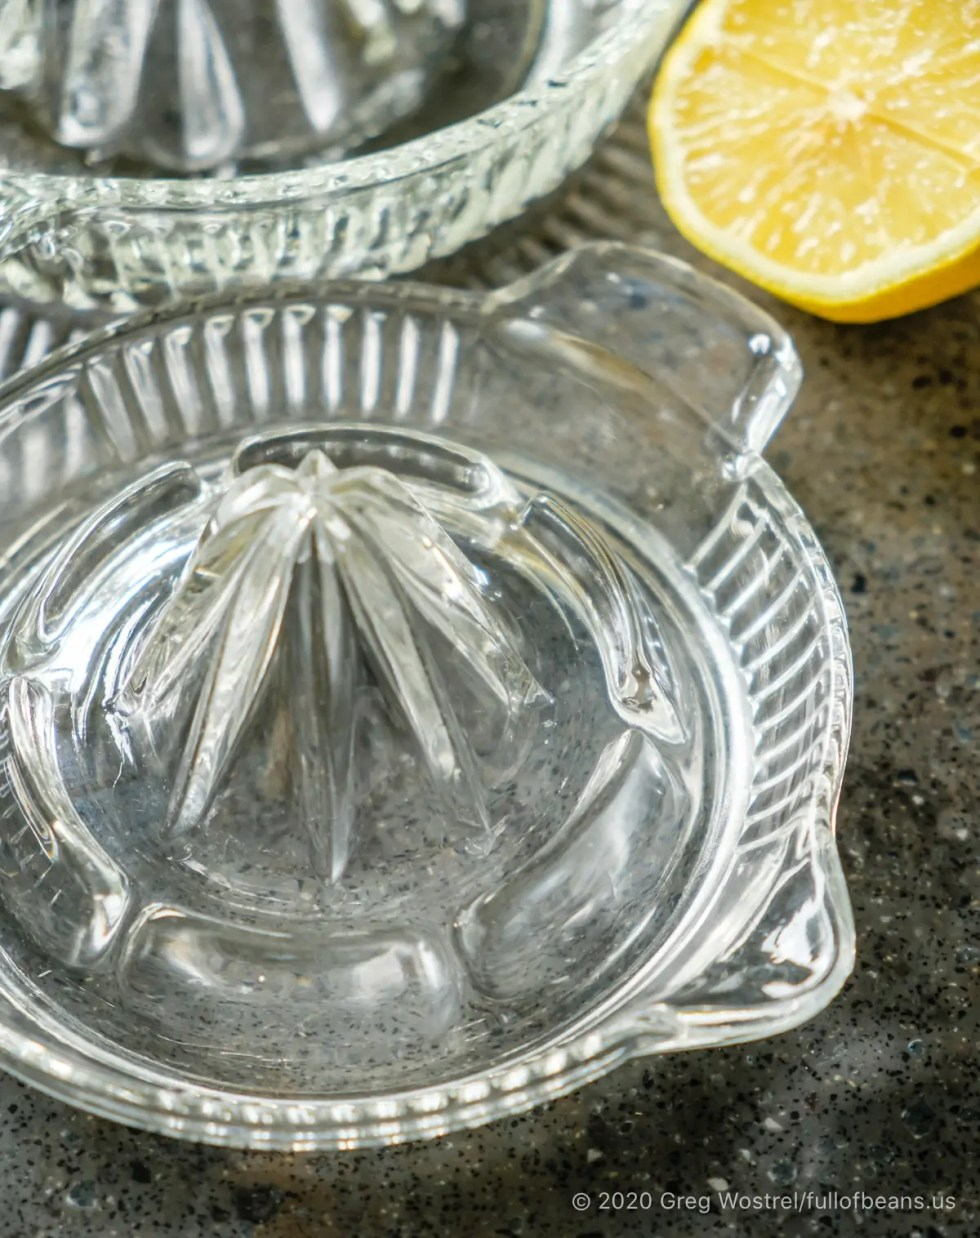 manual glass citrus juicer